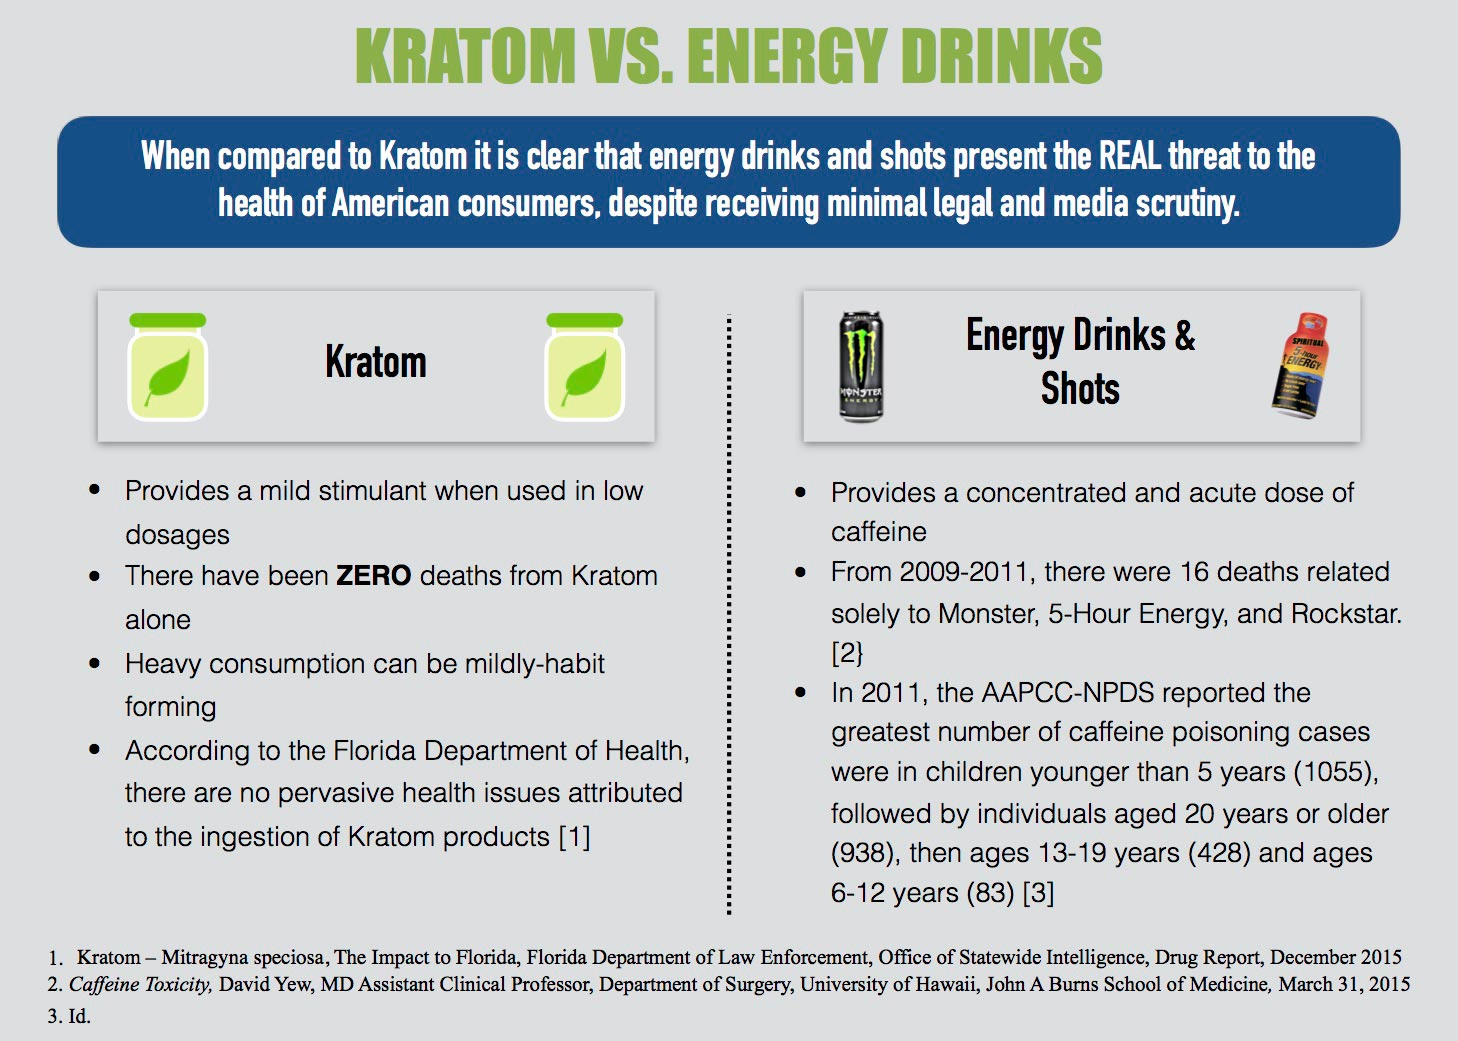 Kratom vs Energy Drinks - A Comparison by the Botanical Legal Defense Group